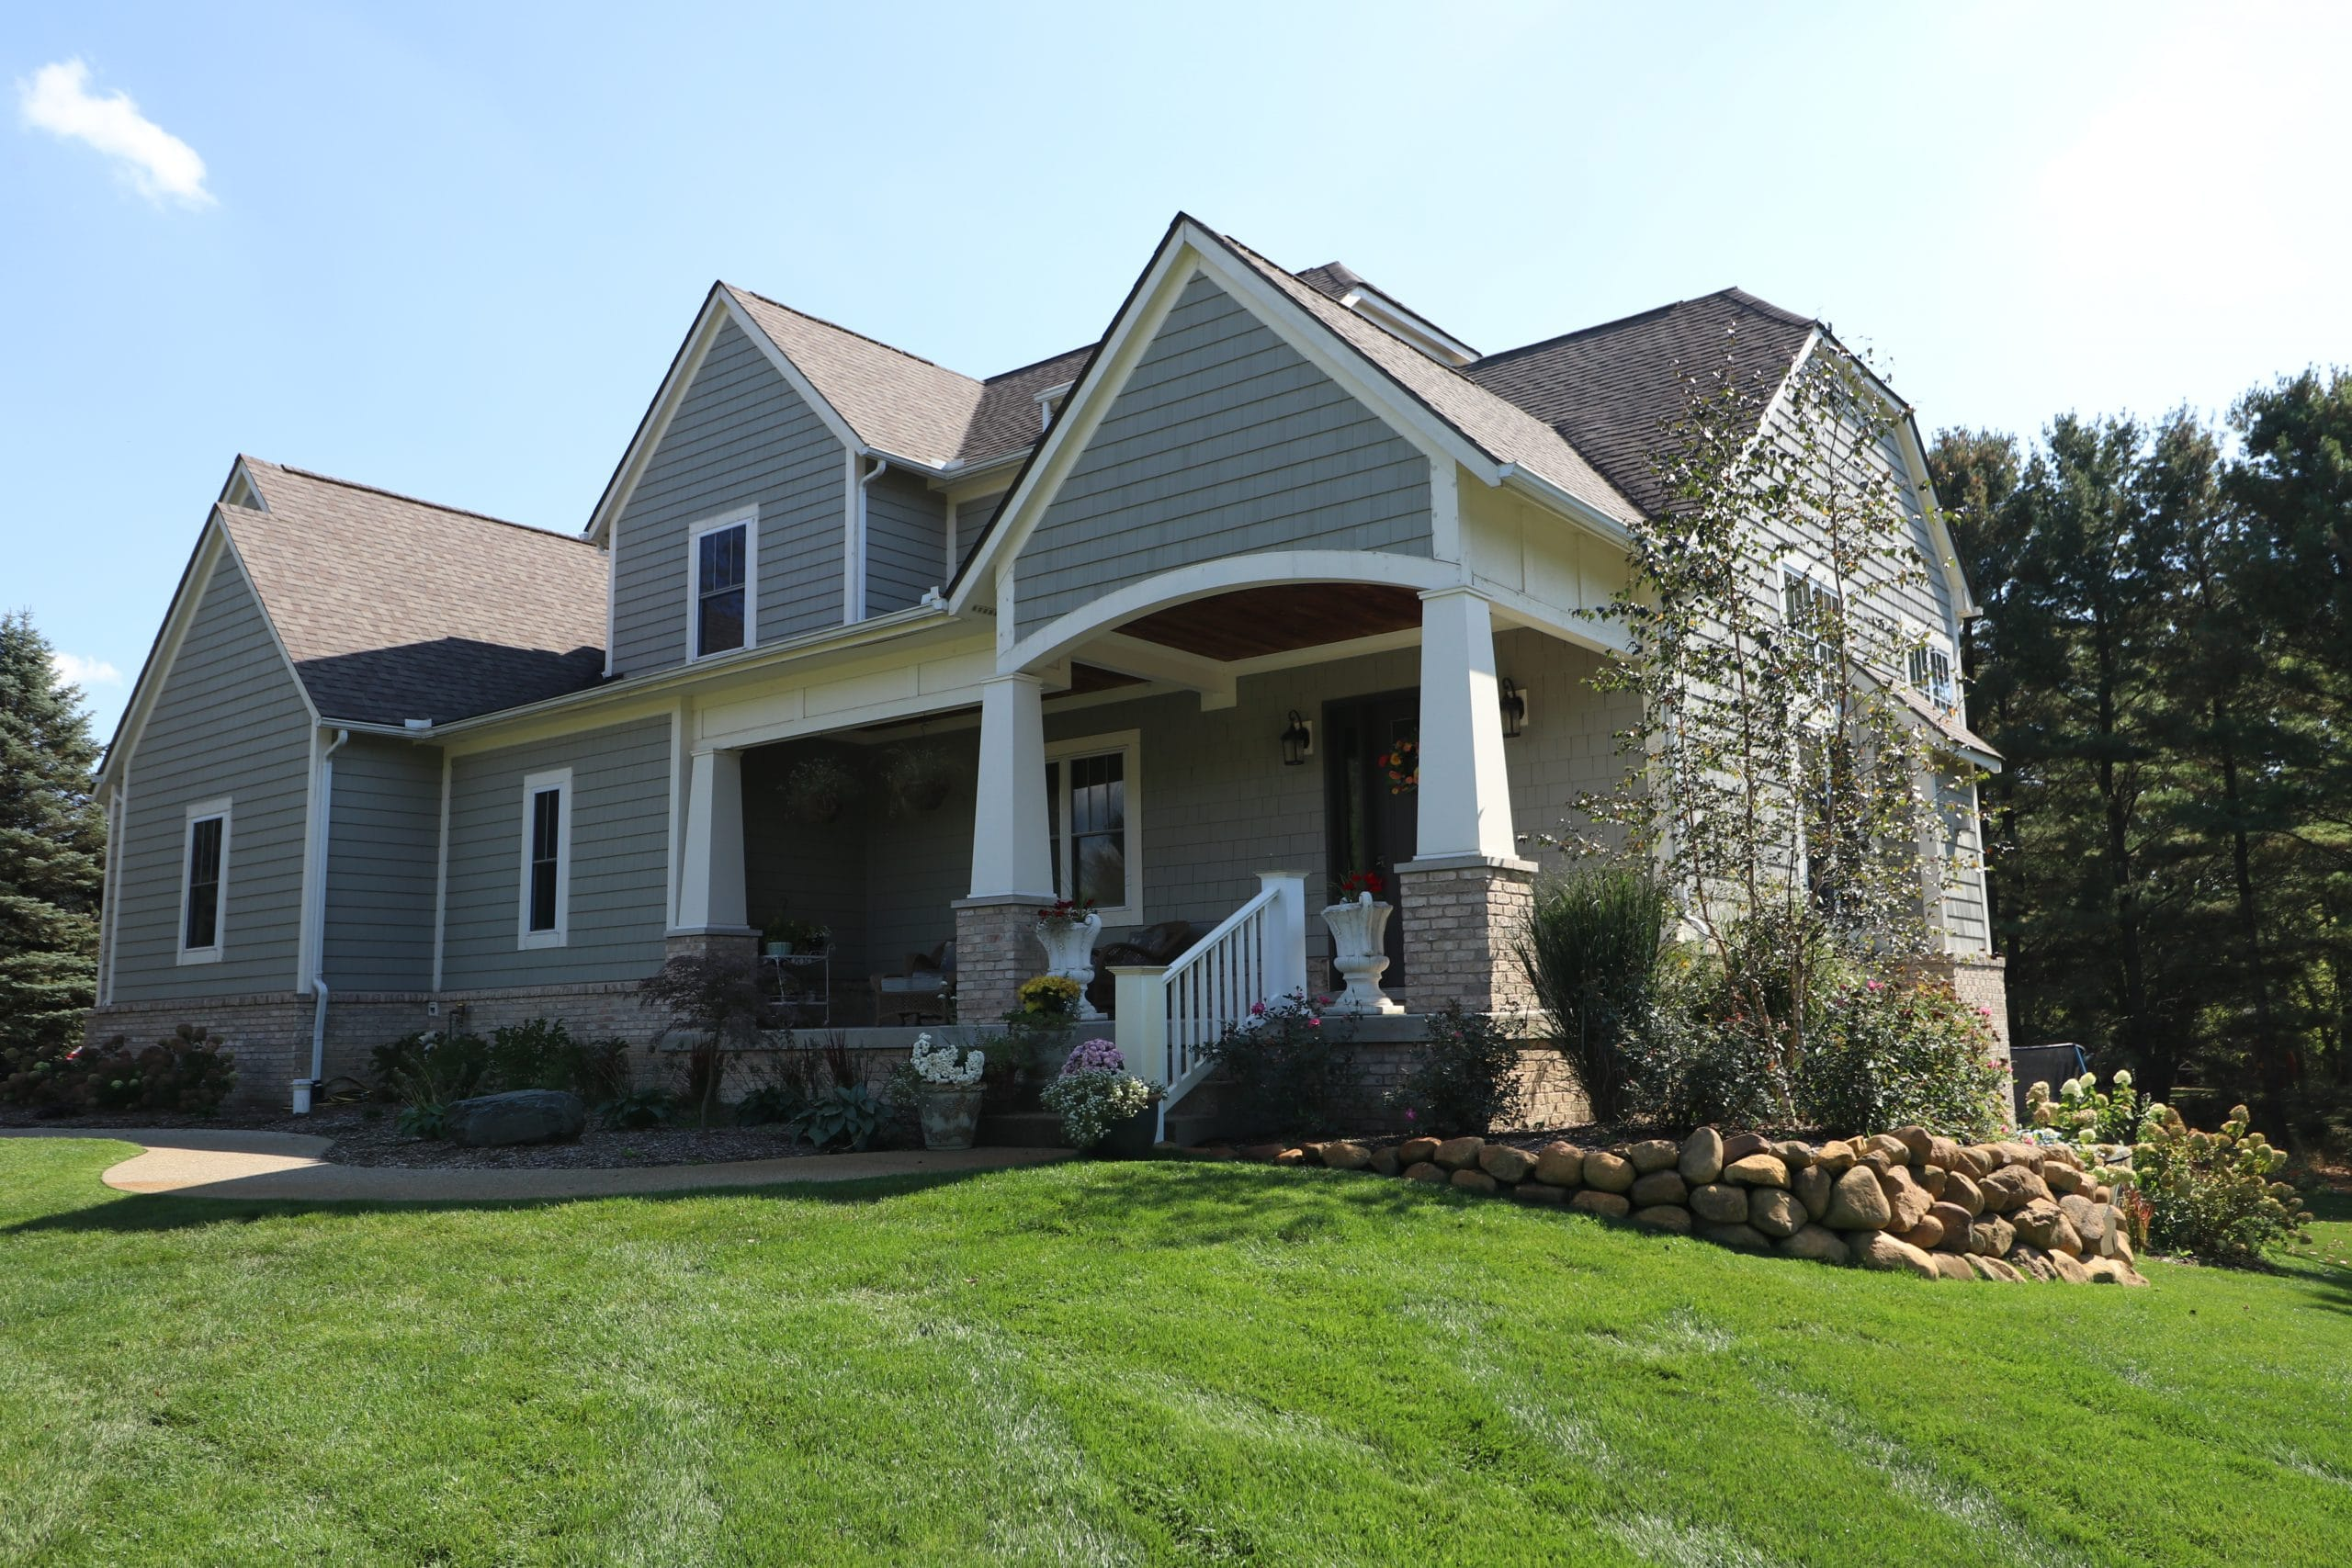 Hardie Board Siding Installation by Allied Construction